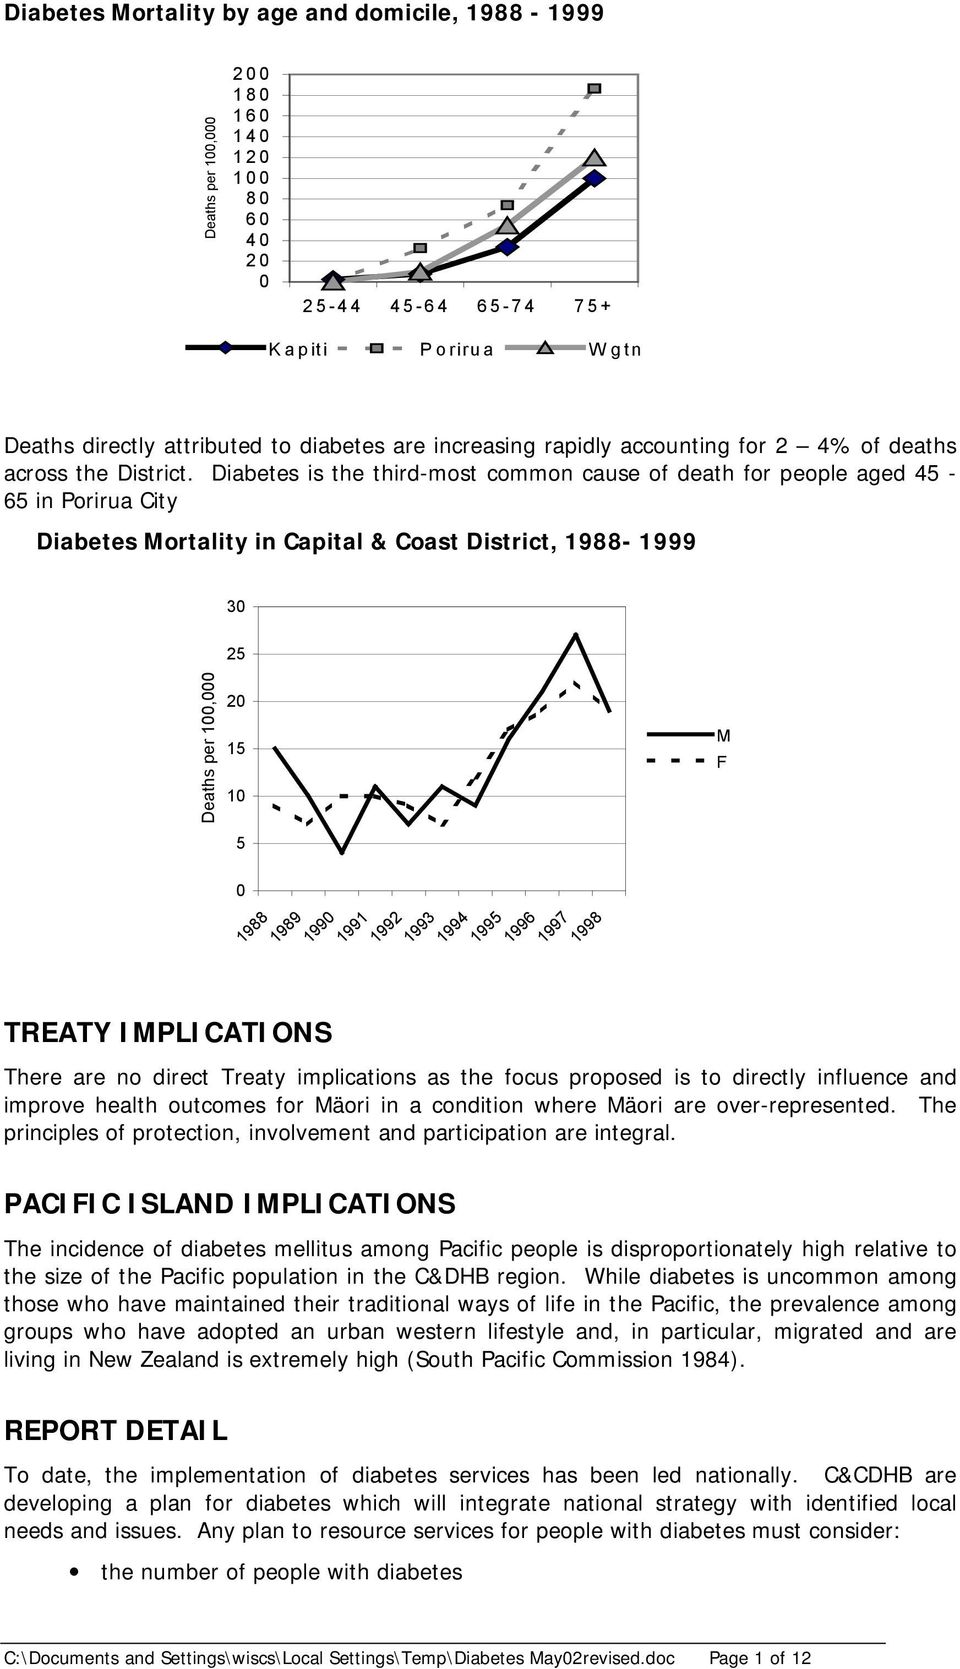 Diabetes is the third-most common cause of death for people aged 45-65 in Porirua City Diabetes Mortality in Capital & Coast District, 1988-1999 30 Deaths per 100,000 25 20 15 10 5 0 1988 1989 TREATY